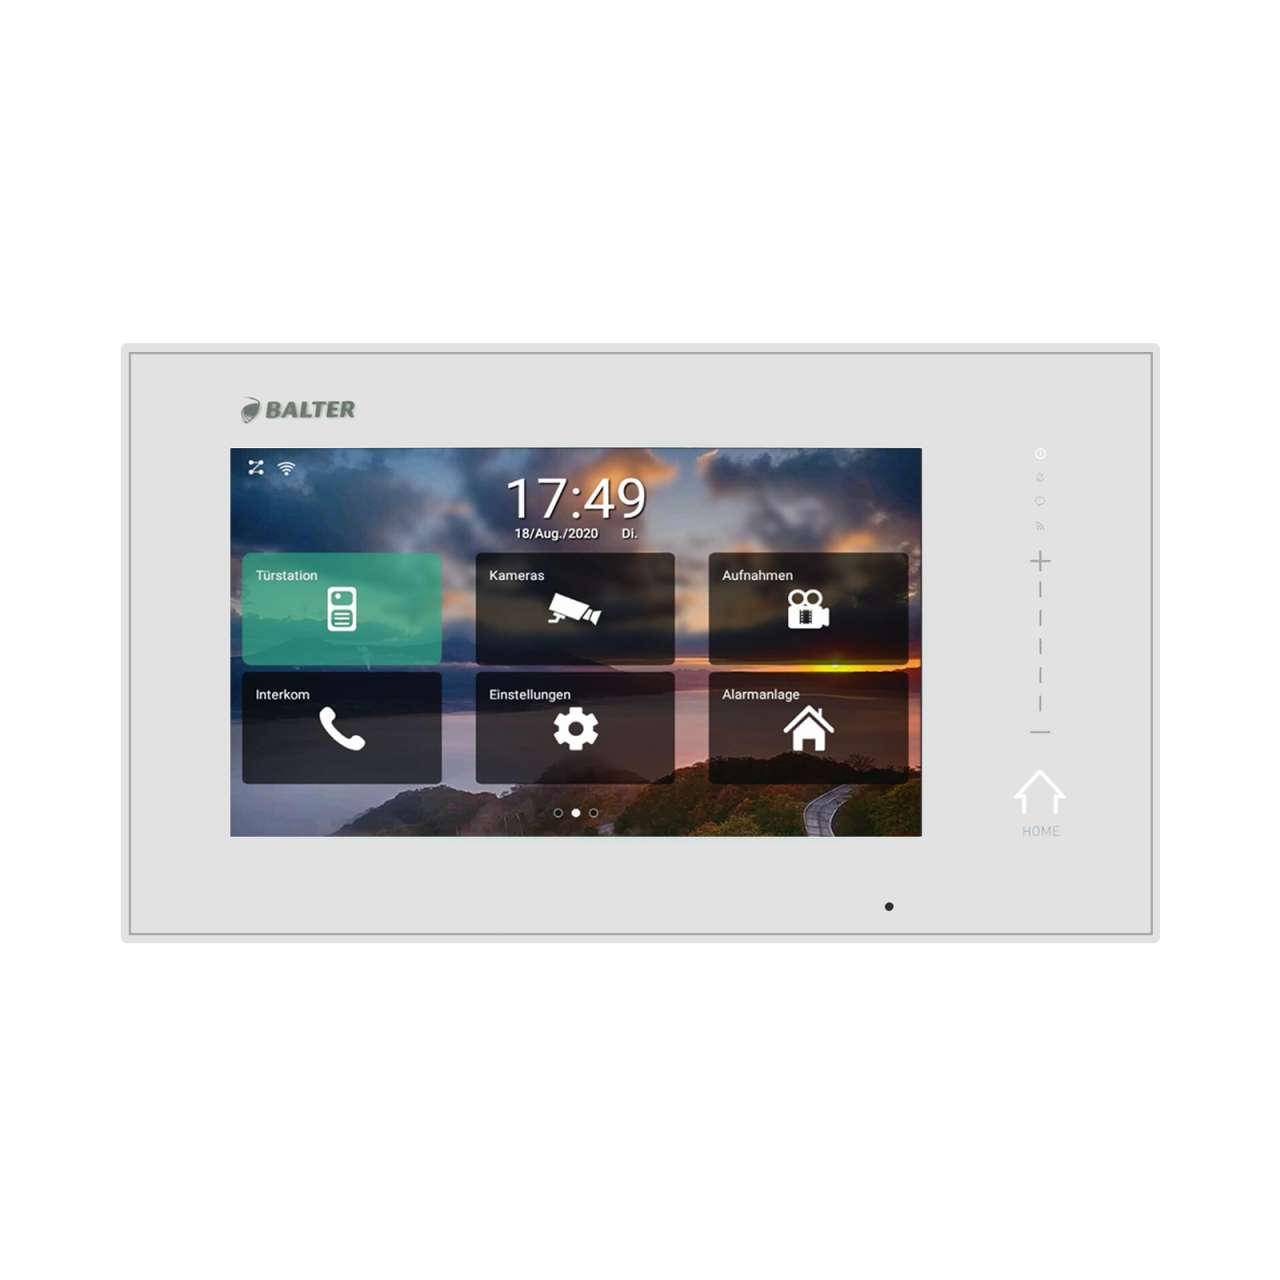 BALTER ERA 7 IP WiFi Touchscreen HD Monitor 2-Draht IP BUS Weiss iOS + Android App BAERAIP71M